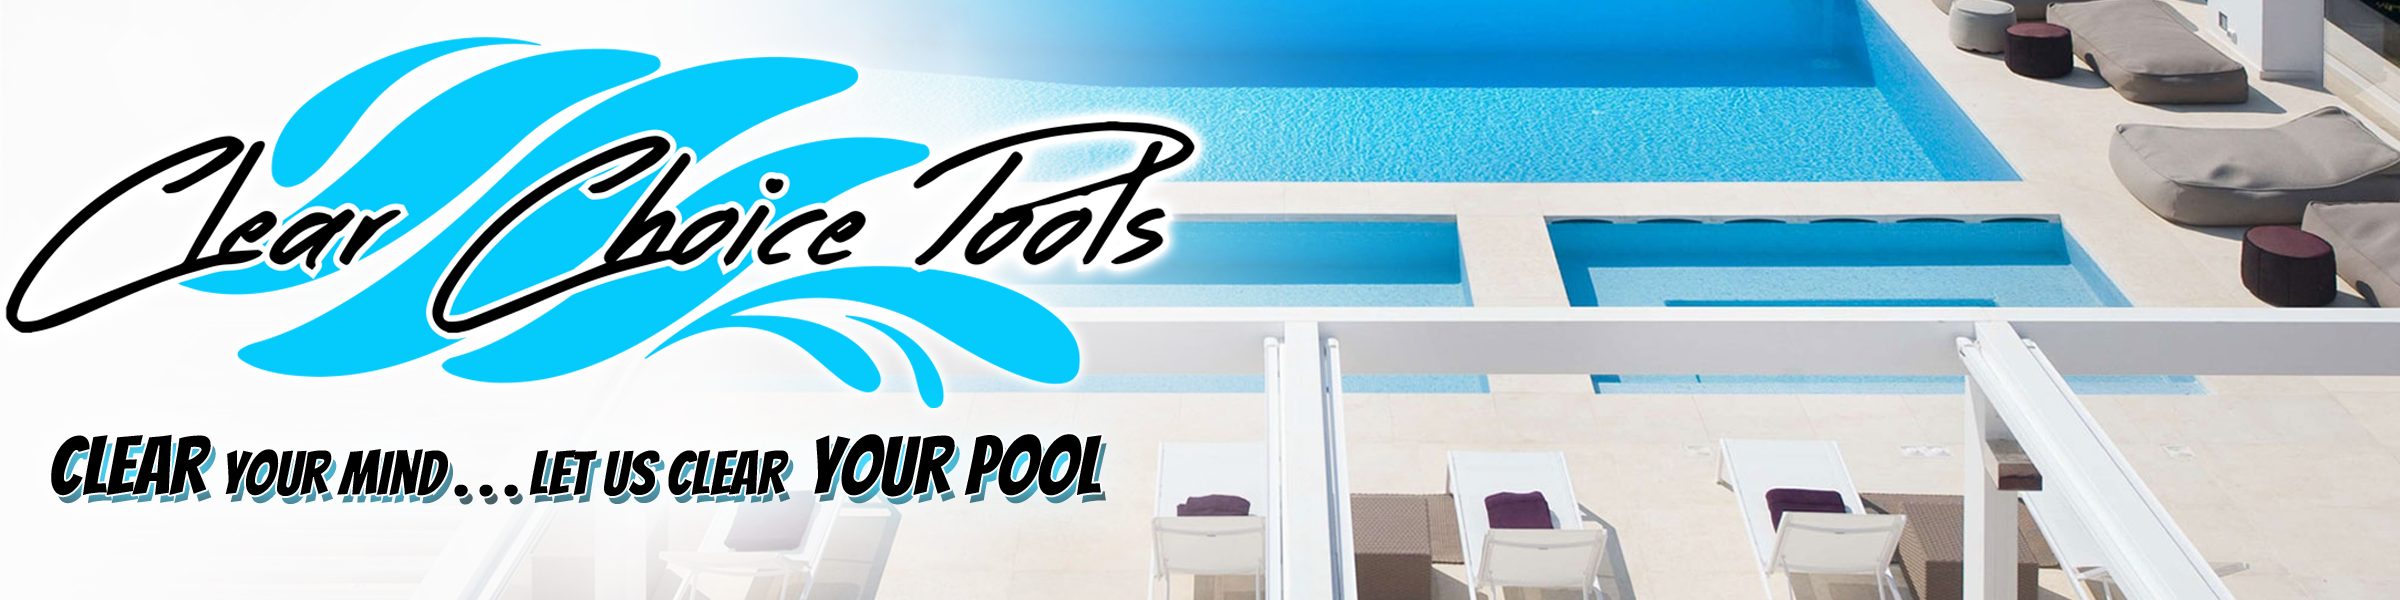 Clear Choice Pool Service